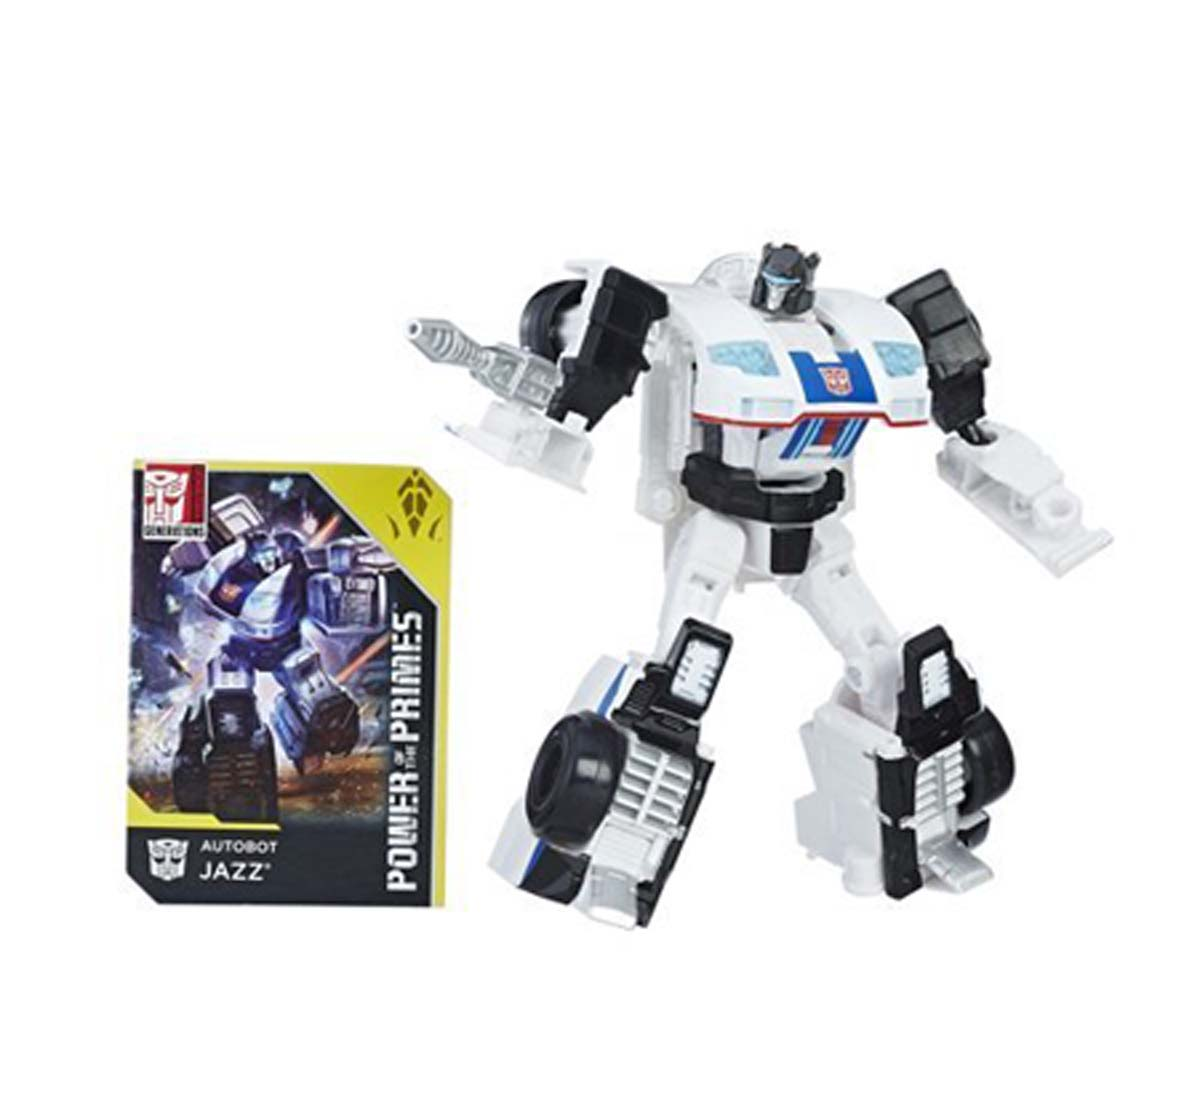 Transformers | Transformers Deluxe Action Figure Assorted Action Figures for Kids Age 8Y+